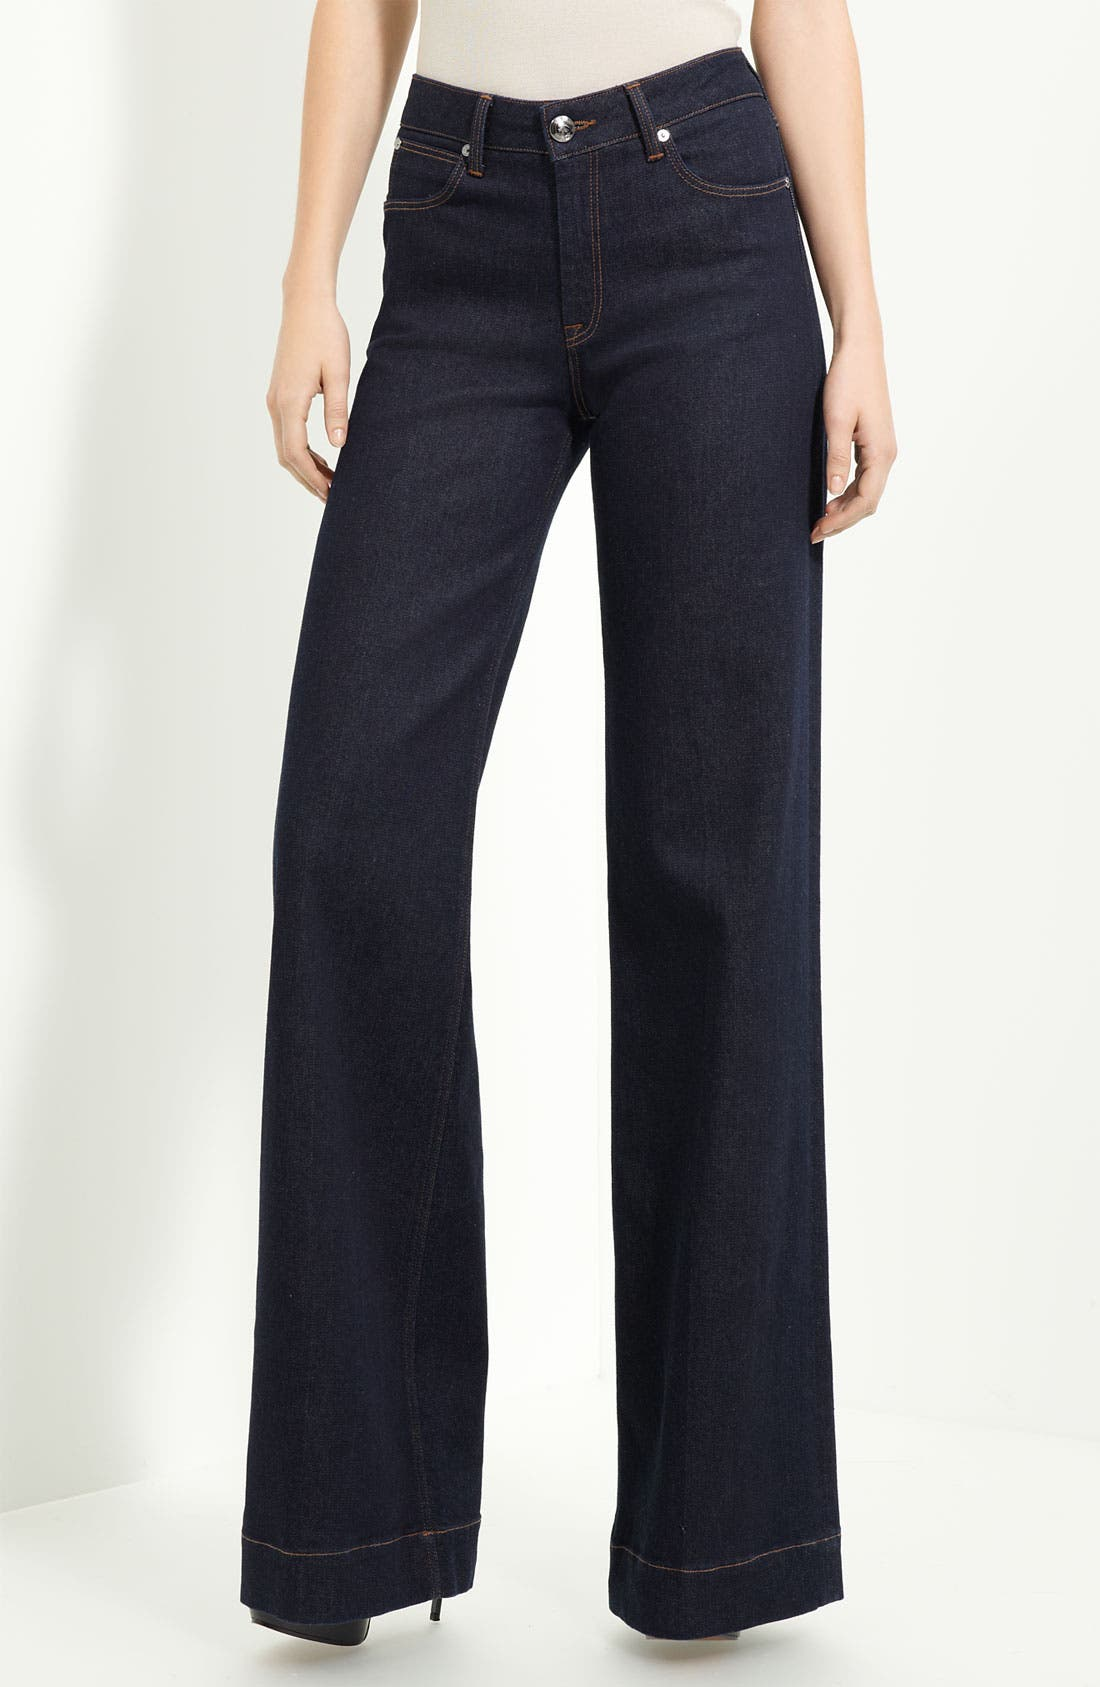 Alternate Image 2  - Burberry London Wide Leg Stretch Jeans (New London Rinse)